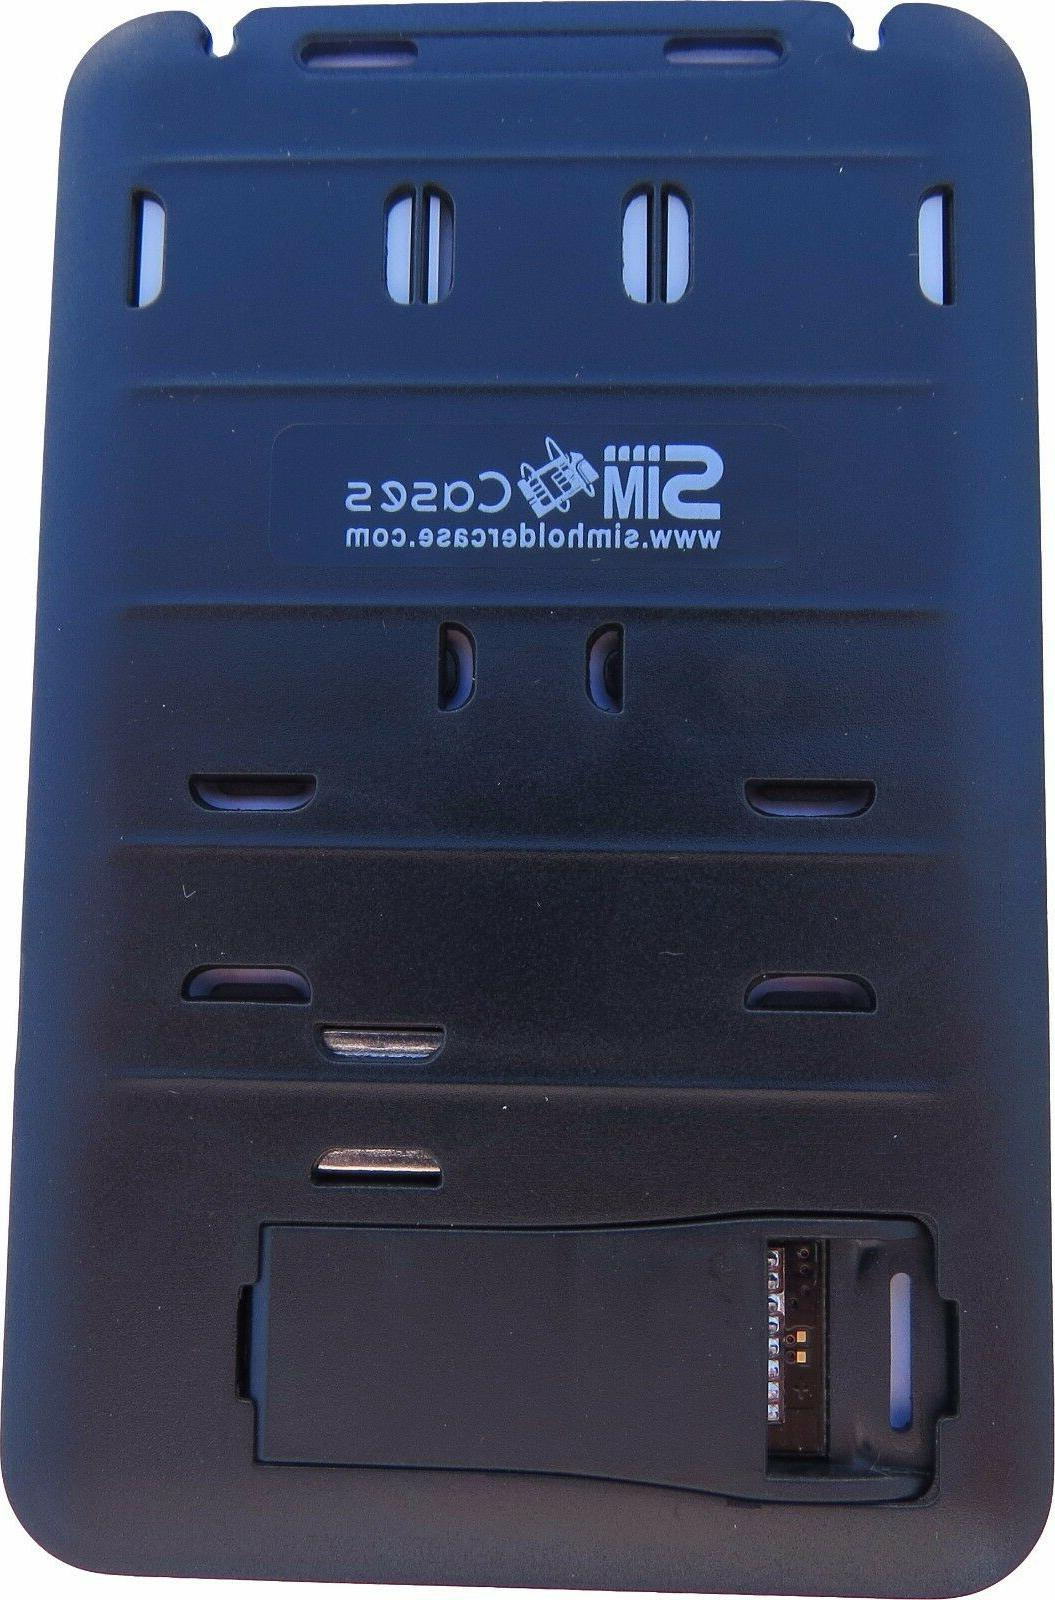 2 X Storage Holder with memory reader sim Adapters